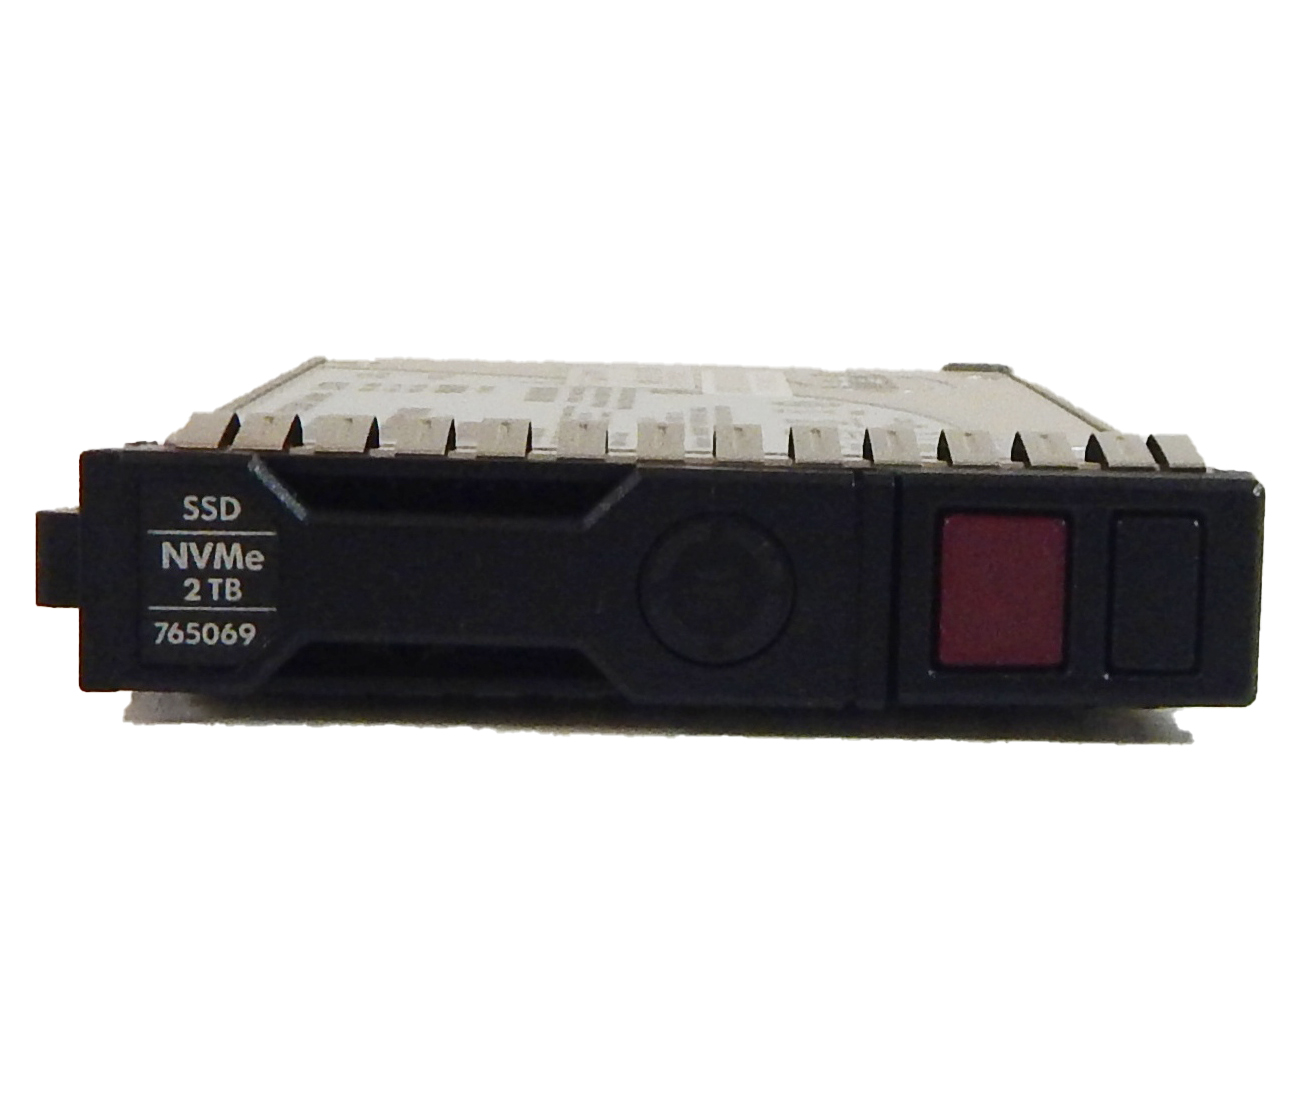 HP 2TB NVMe Solid Statte Drv SSD 2 5 Drive 765069-001 764912